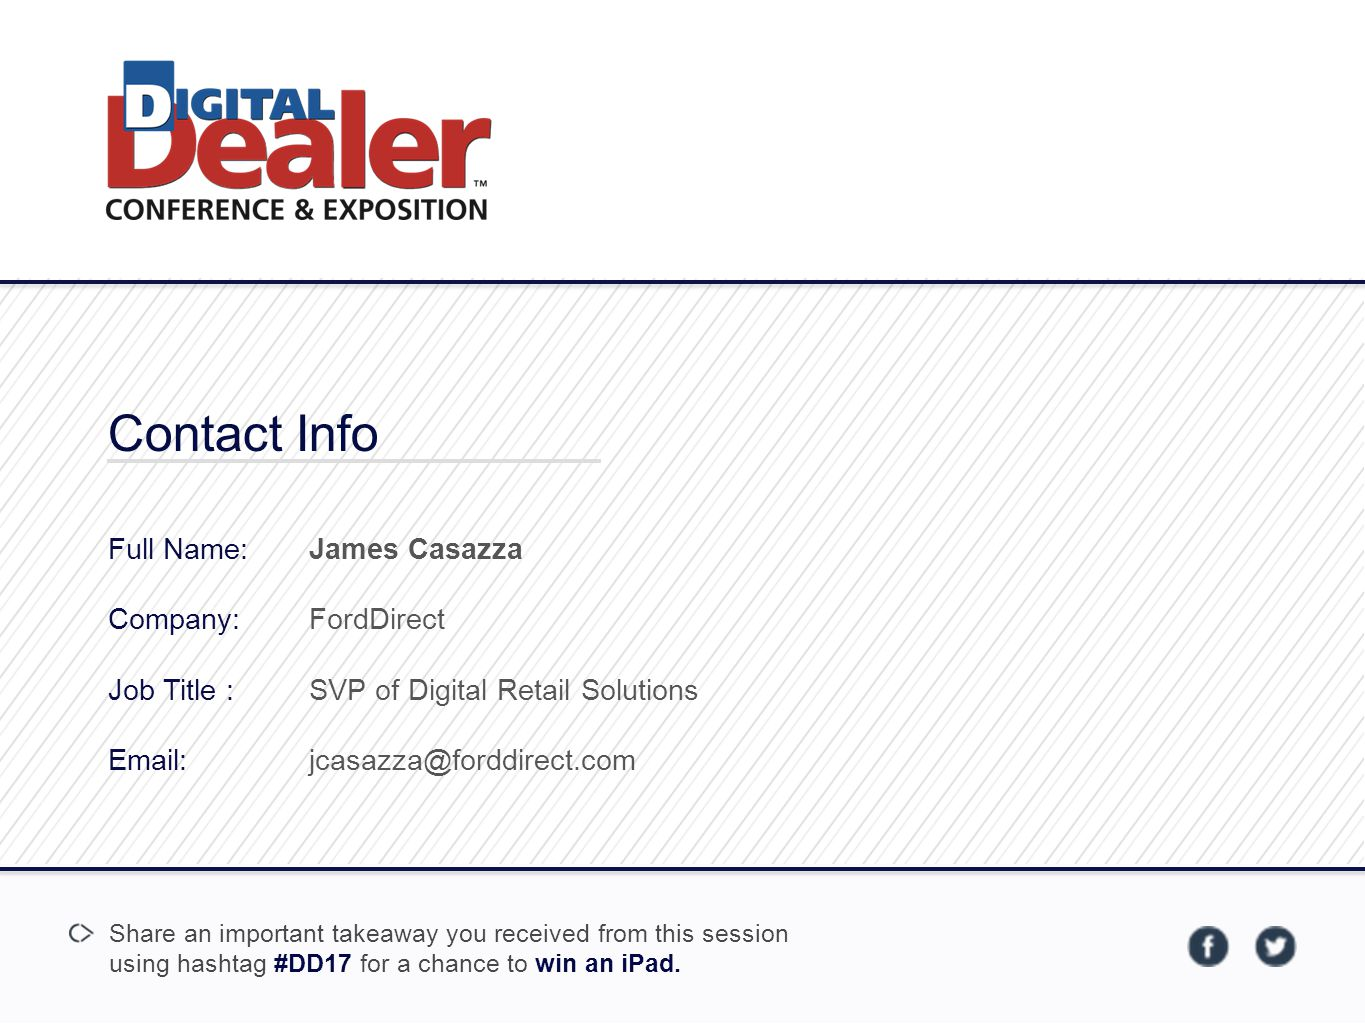 Contact Info Full Name: Company: Job Title :   James Casazza. FordDirect. SVP of Digital Retail Solutions.